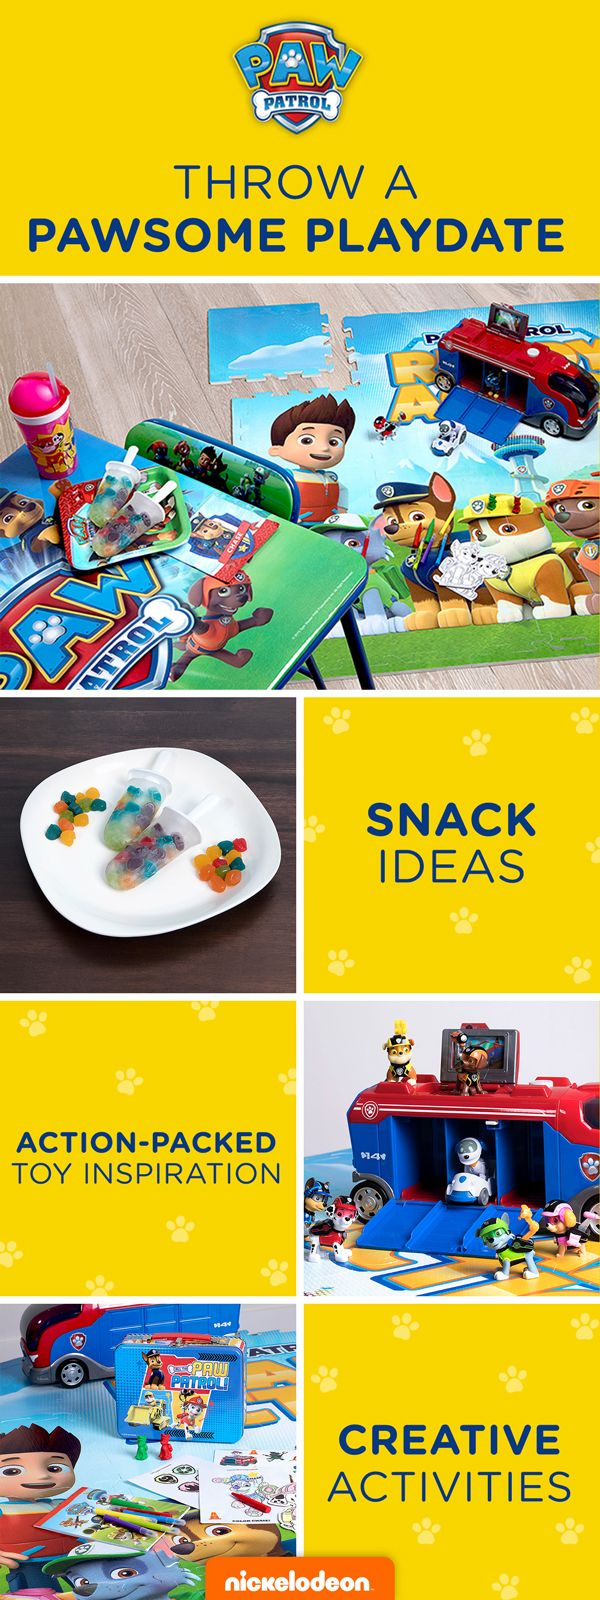 Get ready for your child's next play date with help from the PAW Patrol! Prepping for a preschooler's play date will be a breeze with these fun PAW Patrol activities and easy, healthy snacks, Get PAW Patrol apparel, PAW Patrol  creative toys, and healthy recipe inspiration featuring PAW Patrol gummies! You'll be the coolest parent yet with these PAWsome activities.